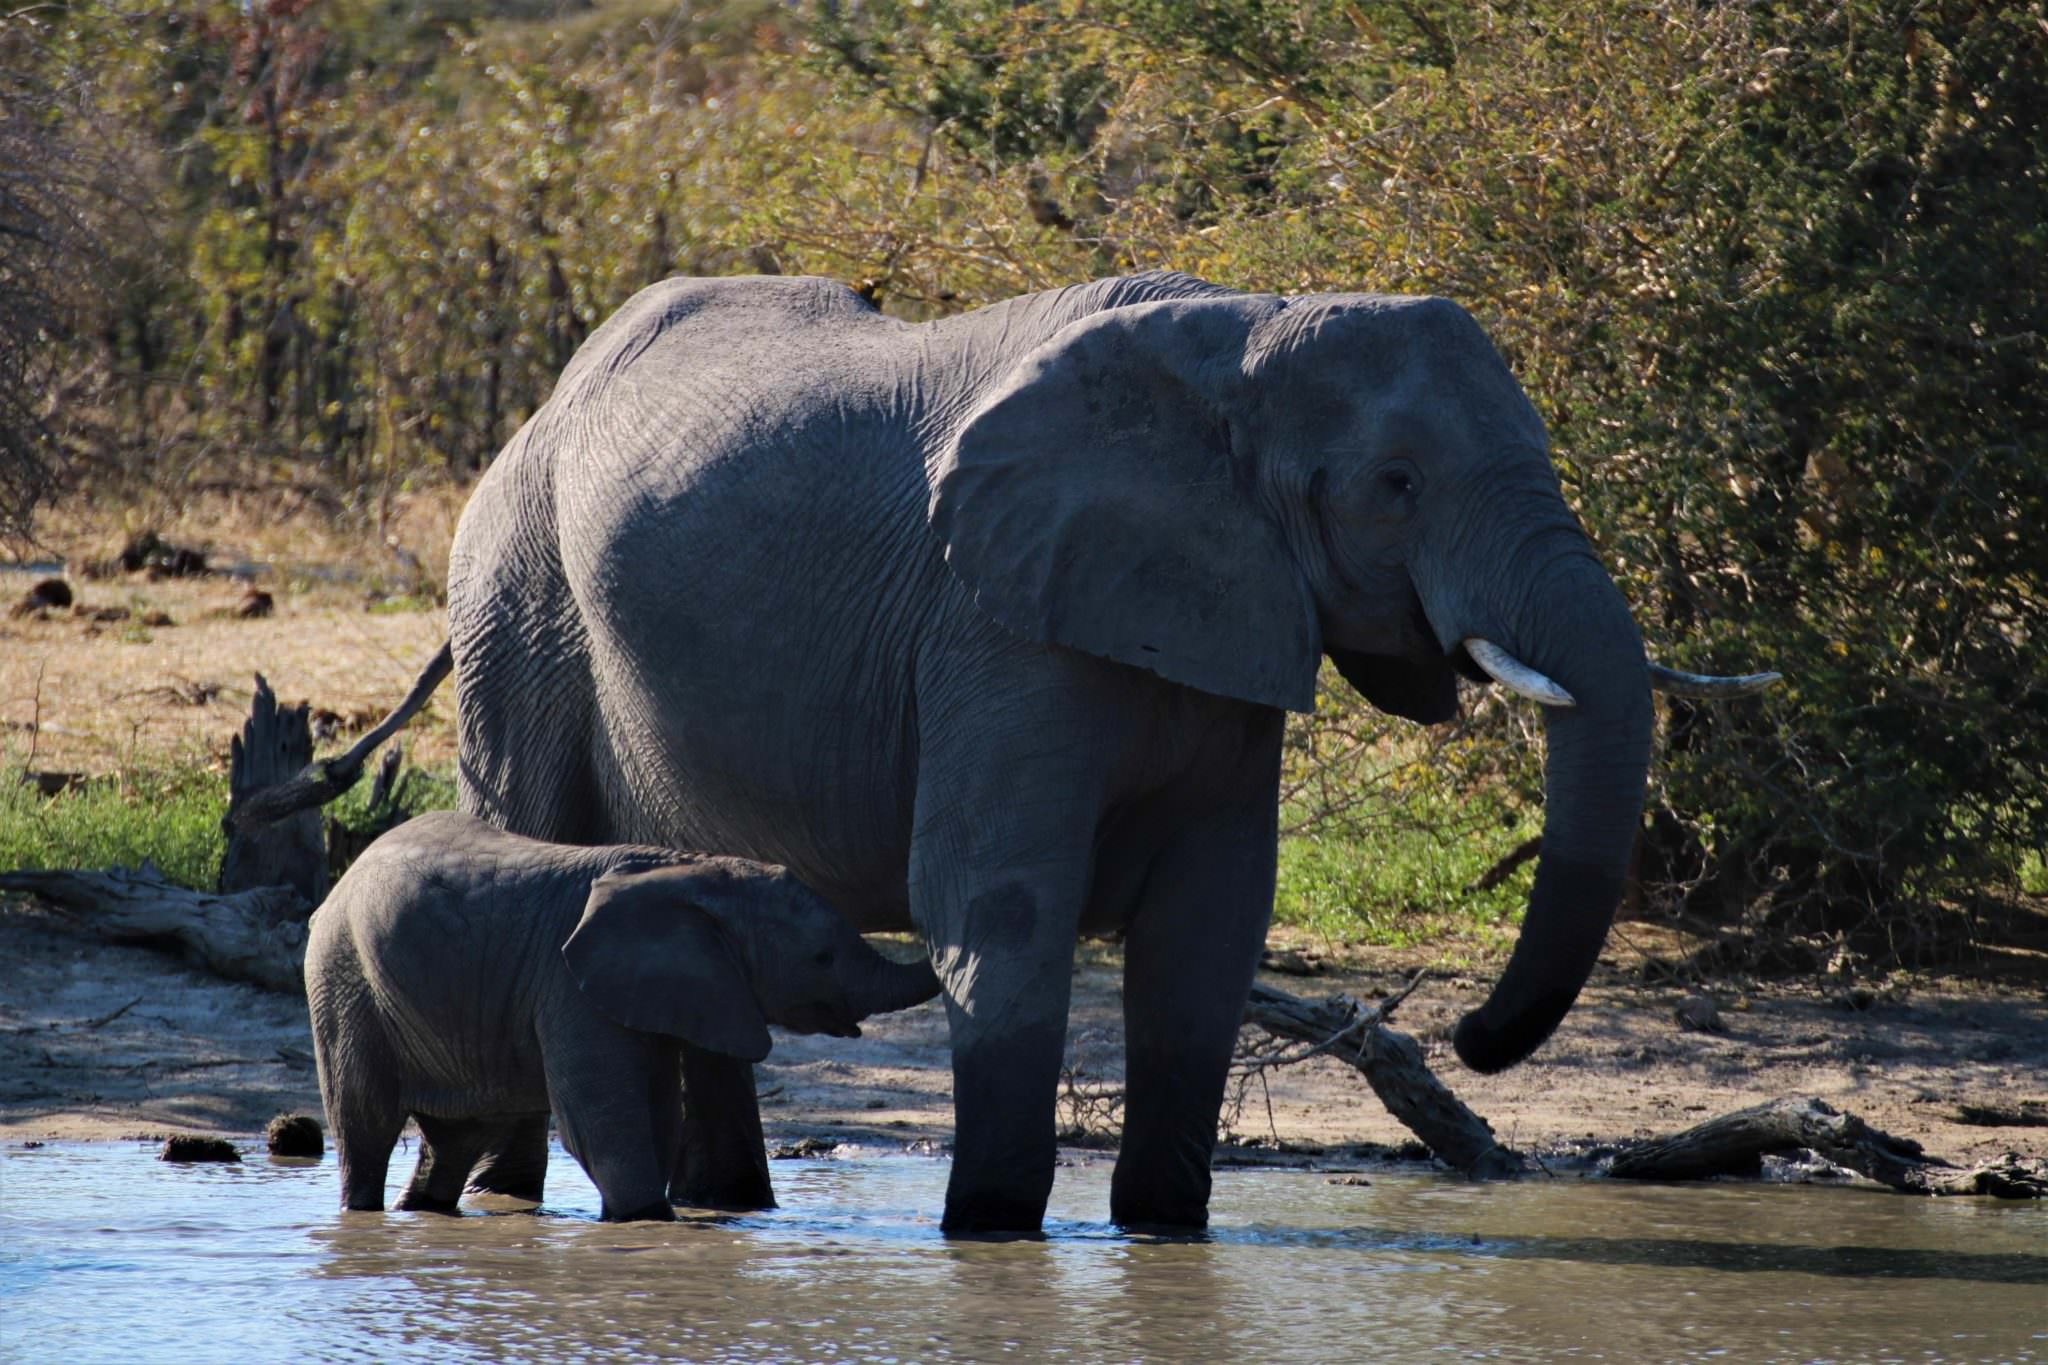 A female elephant and calf standing in a river in Botswana